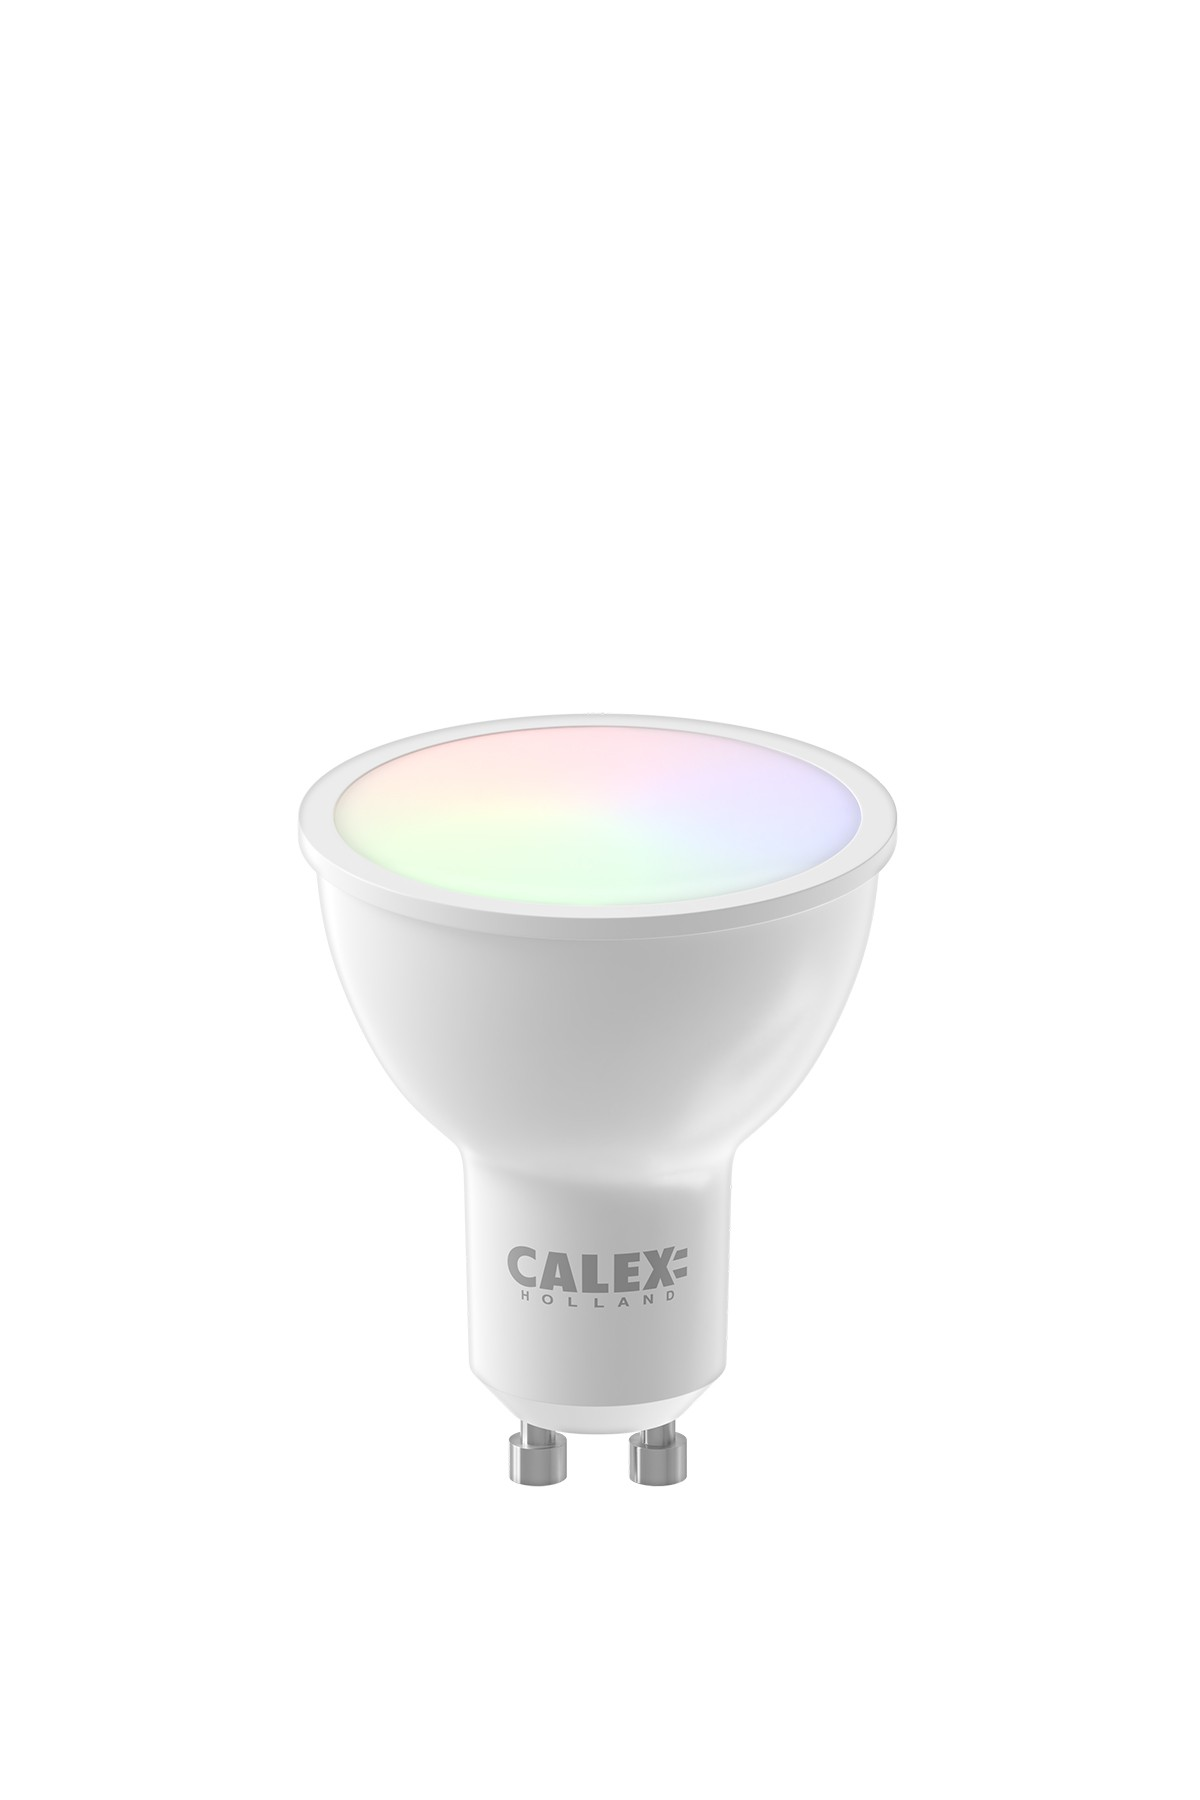 Calex Smart RGB Reflector LED lamp 5W 350lm 2200-4000K